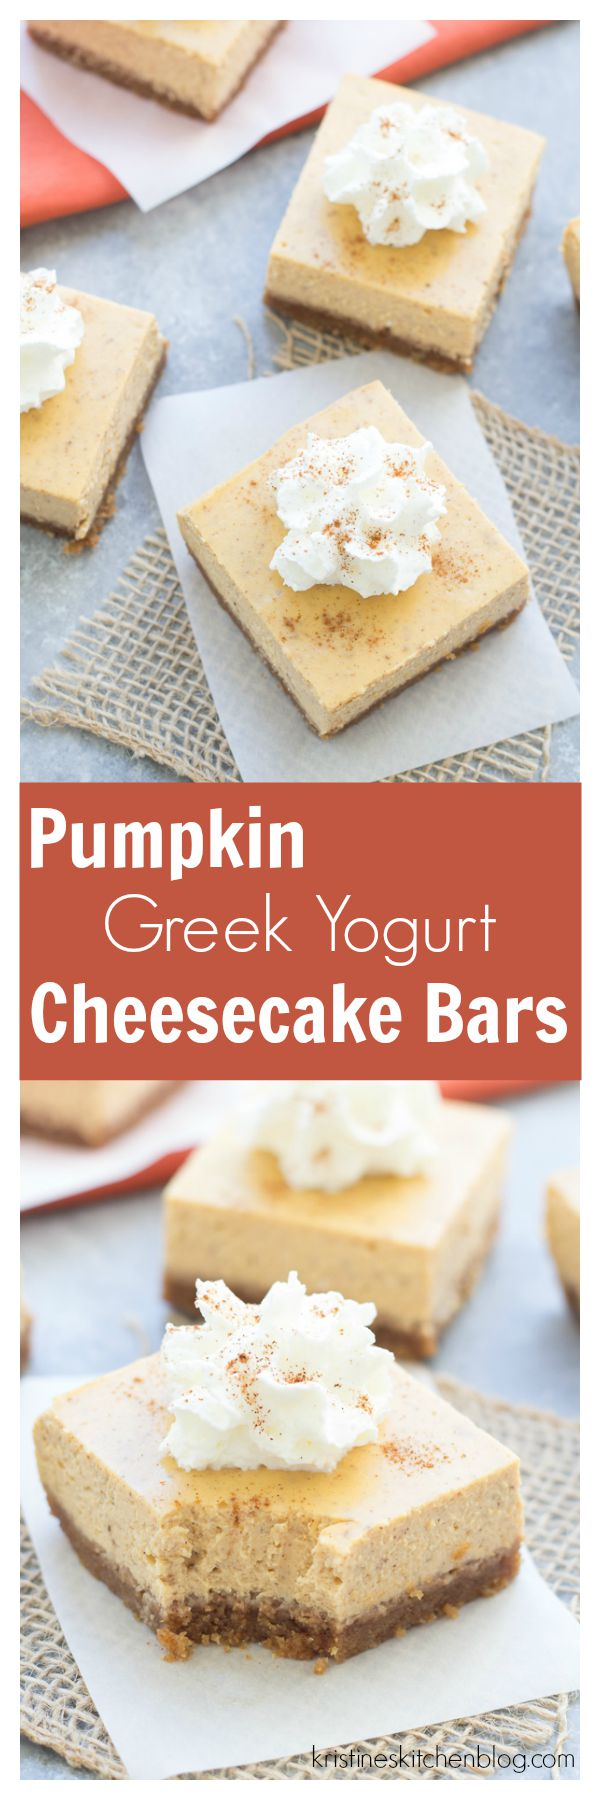 Pumpkin Greek Yogurt Cheesecake Bars - You'll fall for these lighter, pumpkin spiced cheesecake bars!